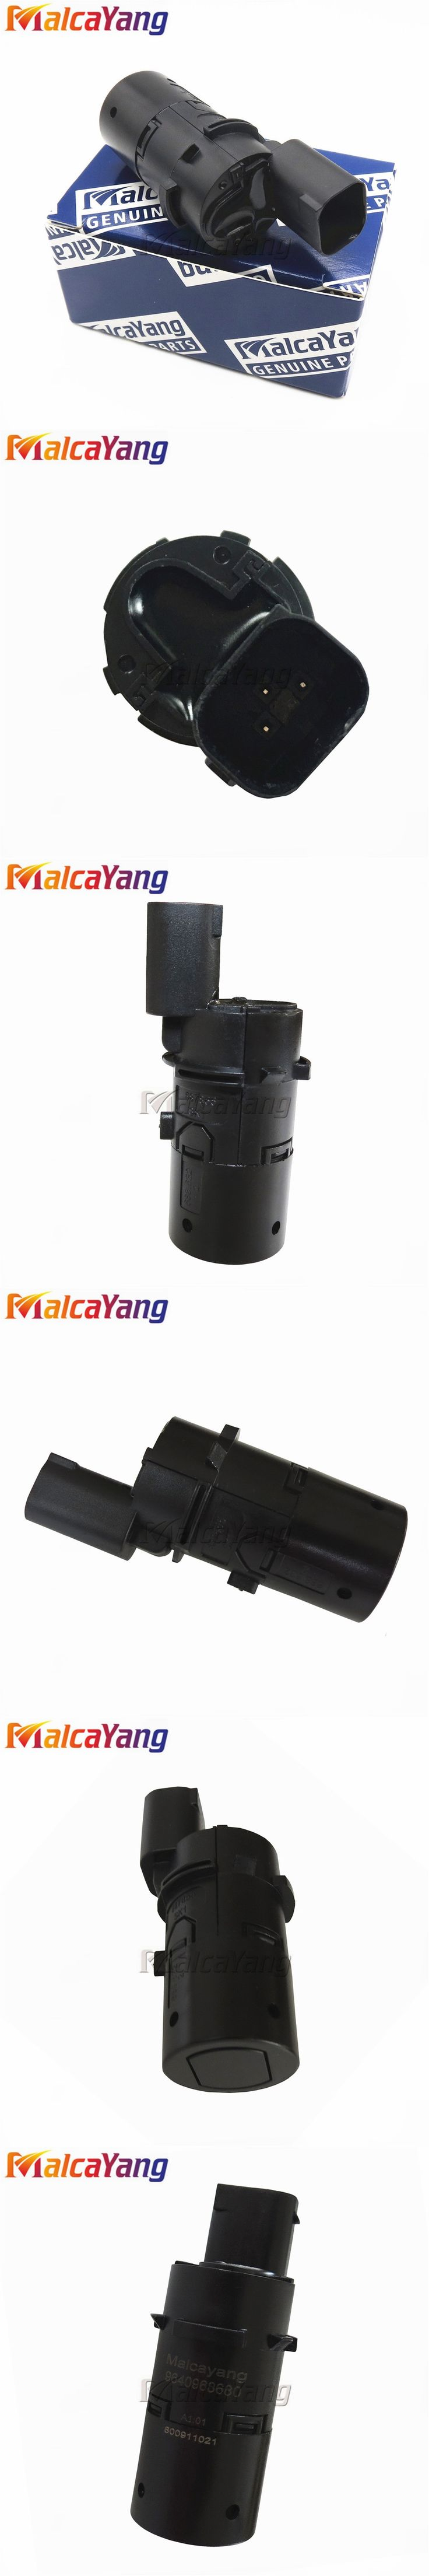 For Citroen C3 C8 Peugeot 807 Car Reverse Parking PDC Sensor PSA 9640968680 PSA9640968680